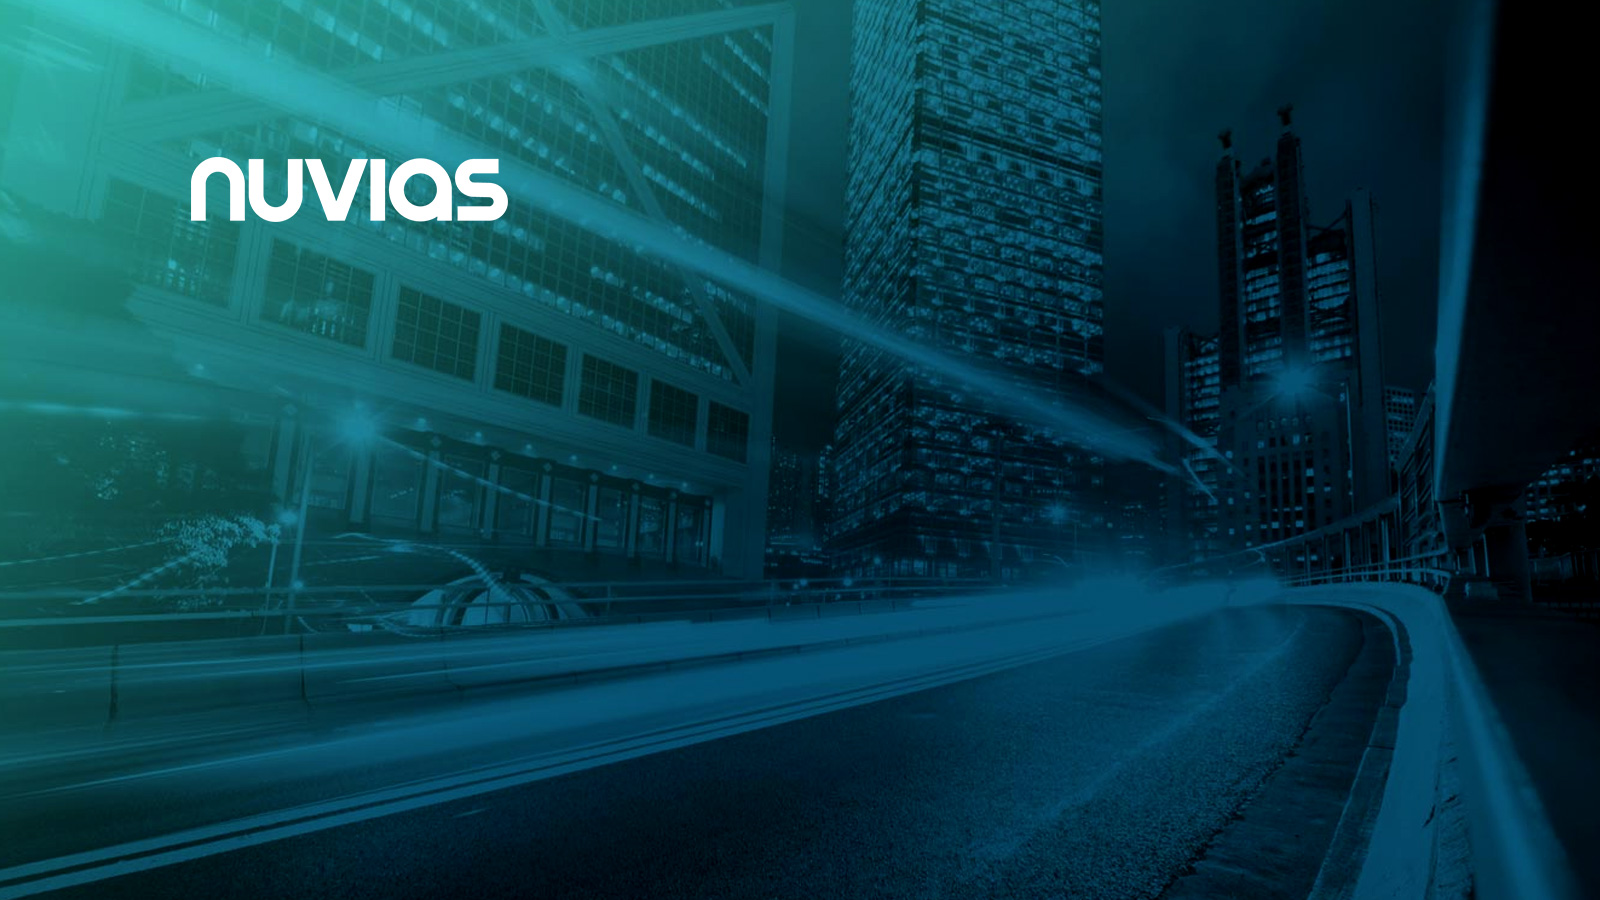 Nuvias Group Signs Distribution Partnership with Dropbox to Bring Smart Workspace to the Channel 1